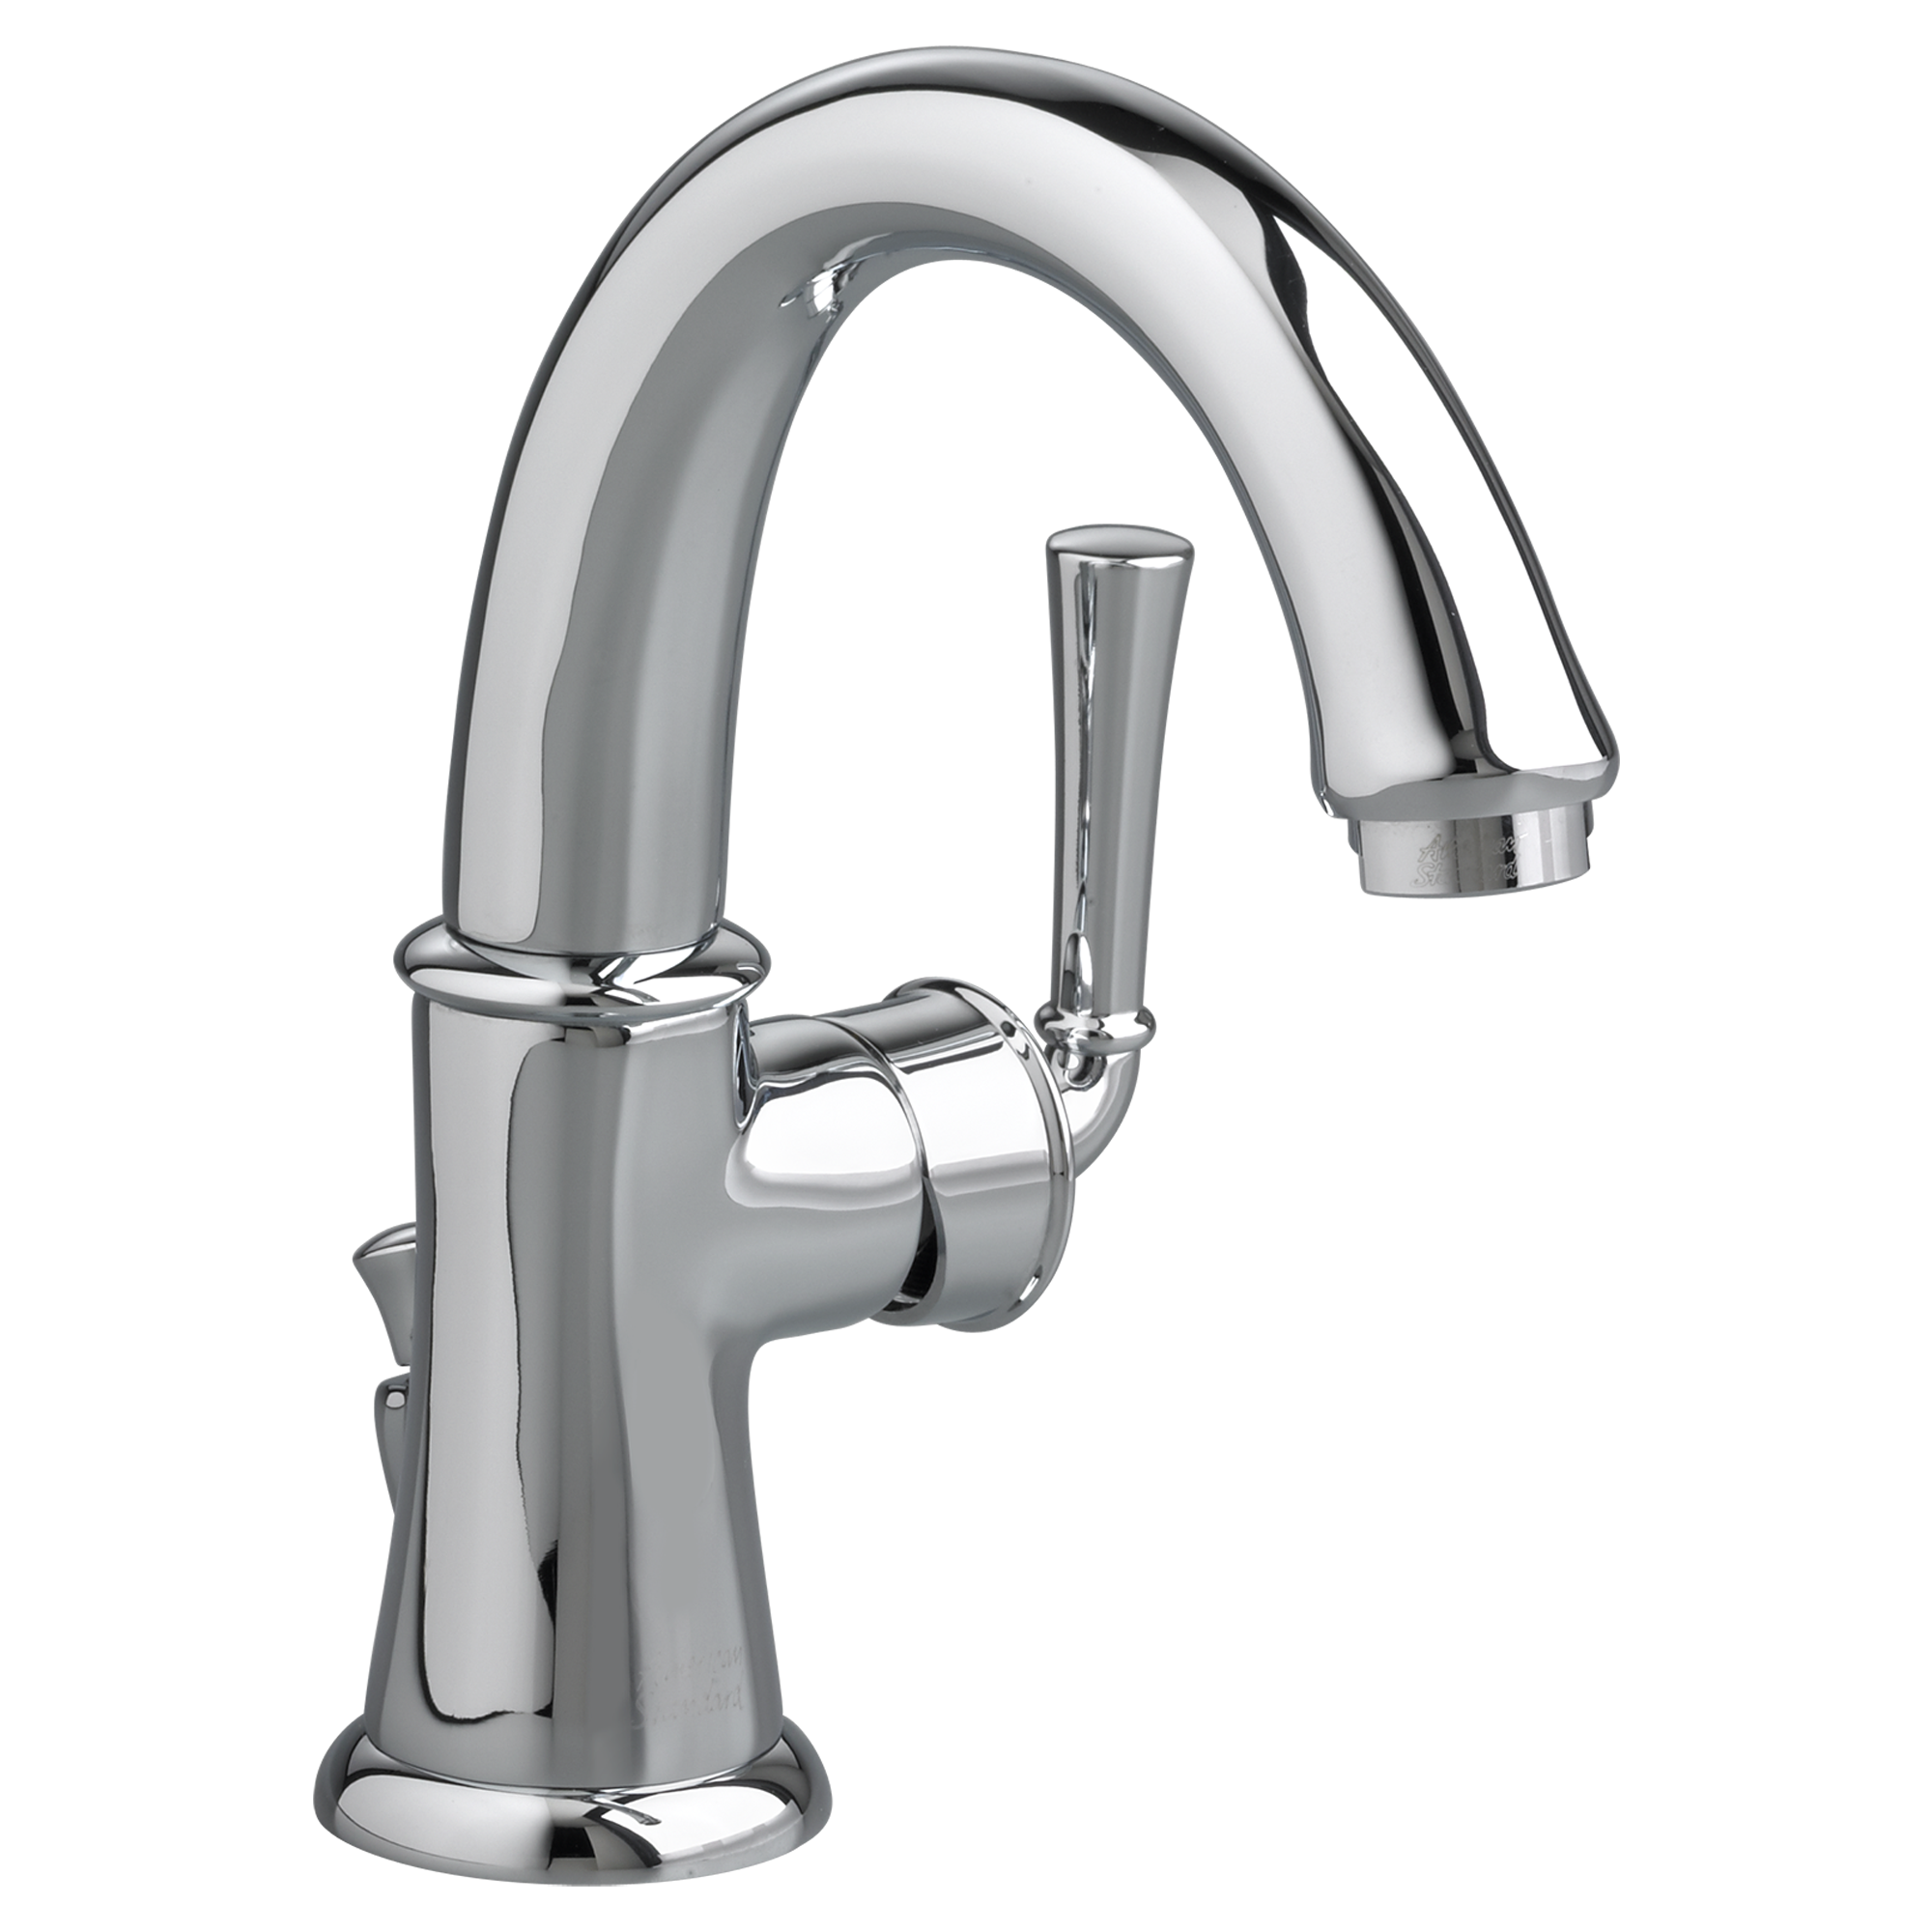 Brushed Nickel Bathroom Faucet | Grohe Bathroom Faucet | Bathroom Faucets